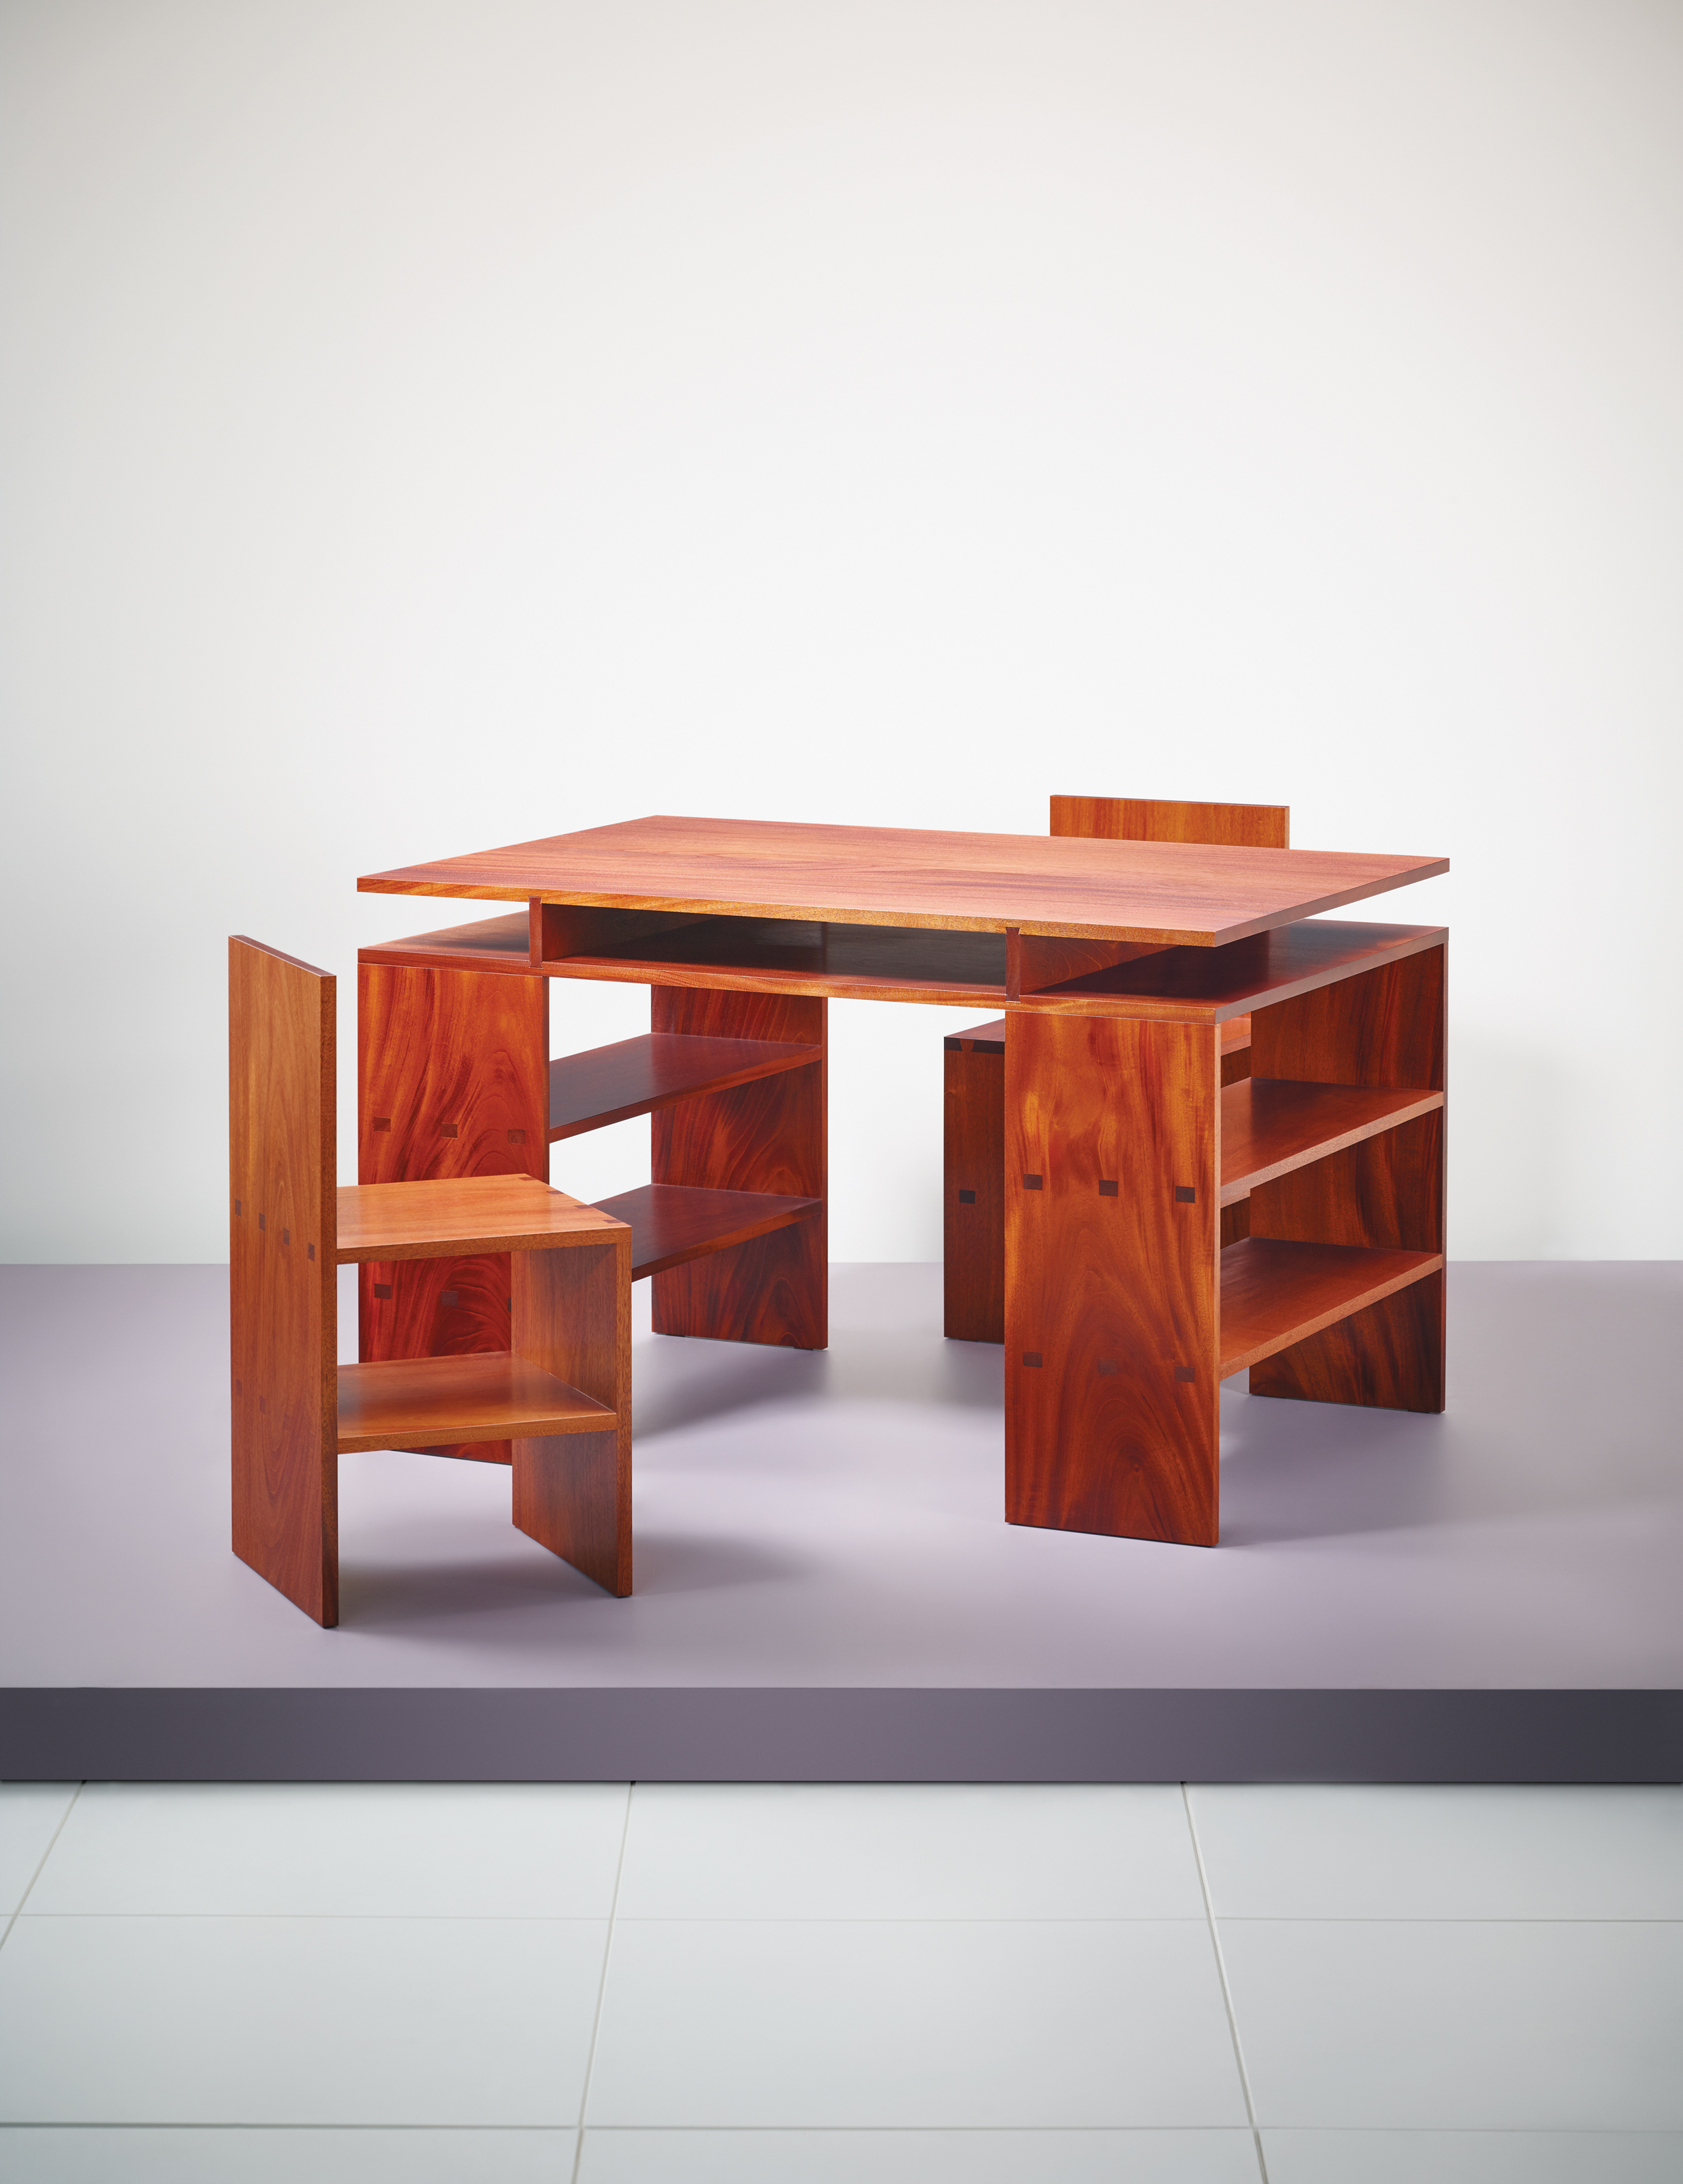 photo home computer diy details these best perfect decoration we two for furniture desk shaped want person ideas l